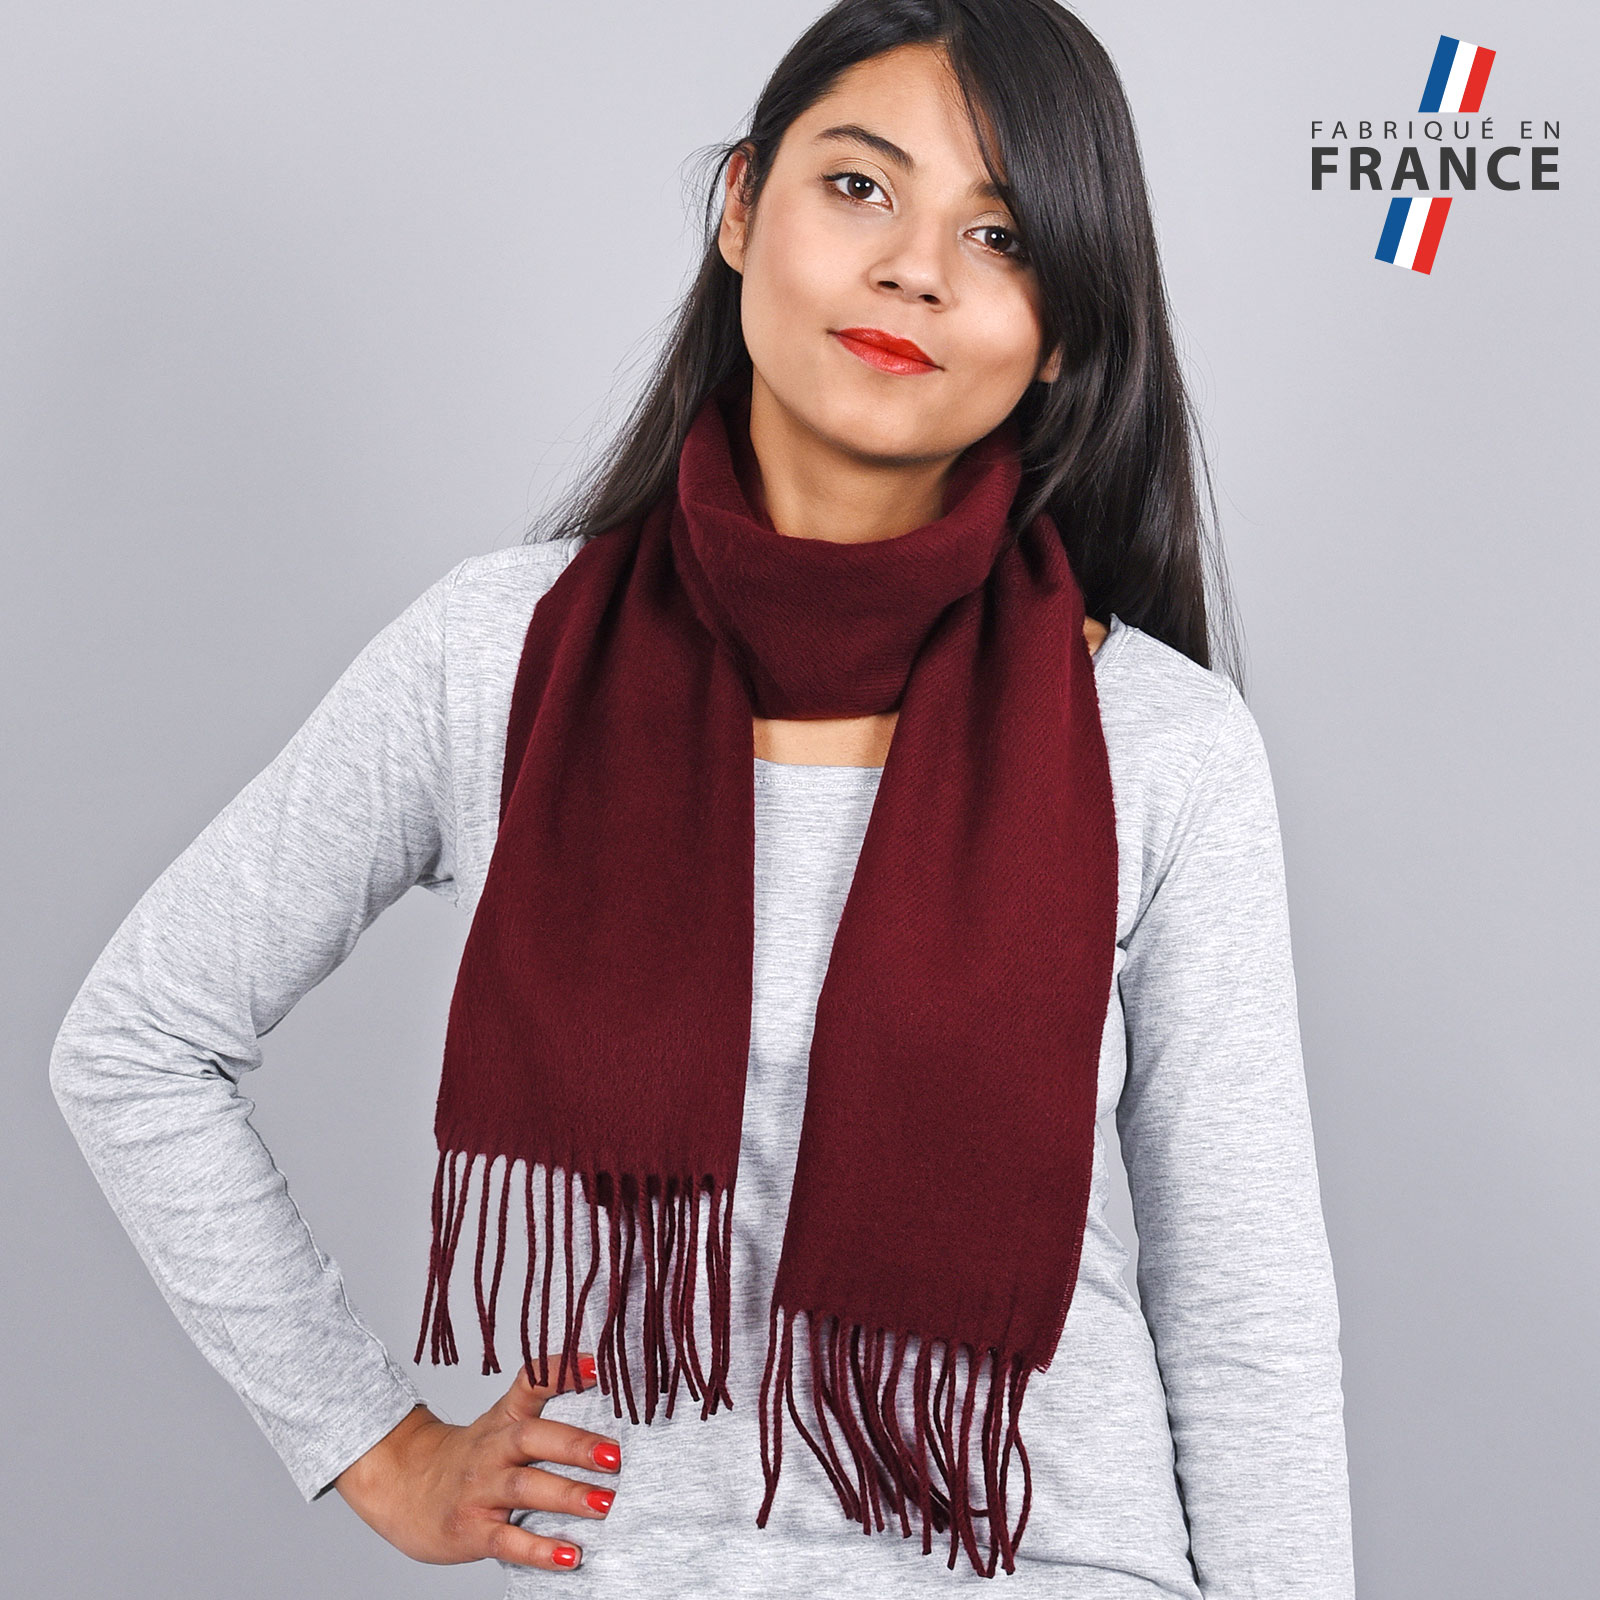 AT-03435-VF16-LB_FR-echarpe-franges-bordeaux-femme-fabrication-francaise